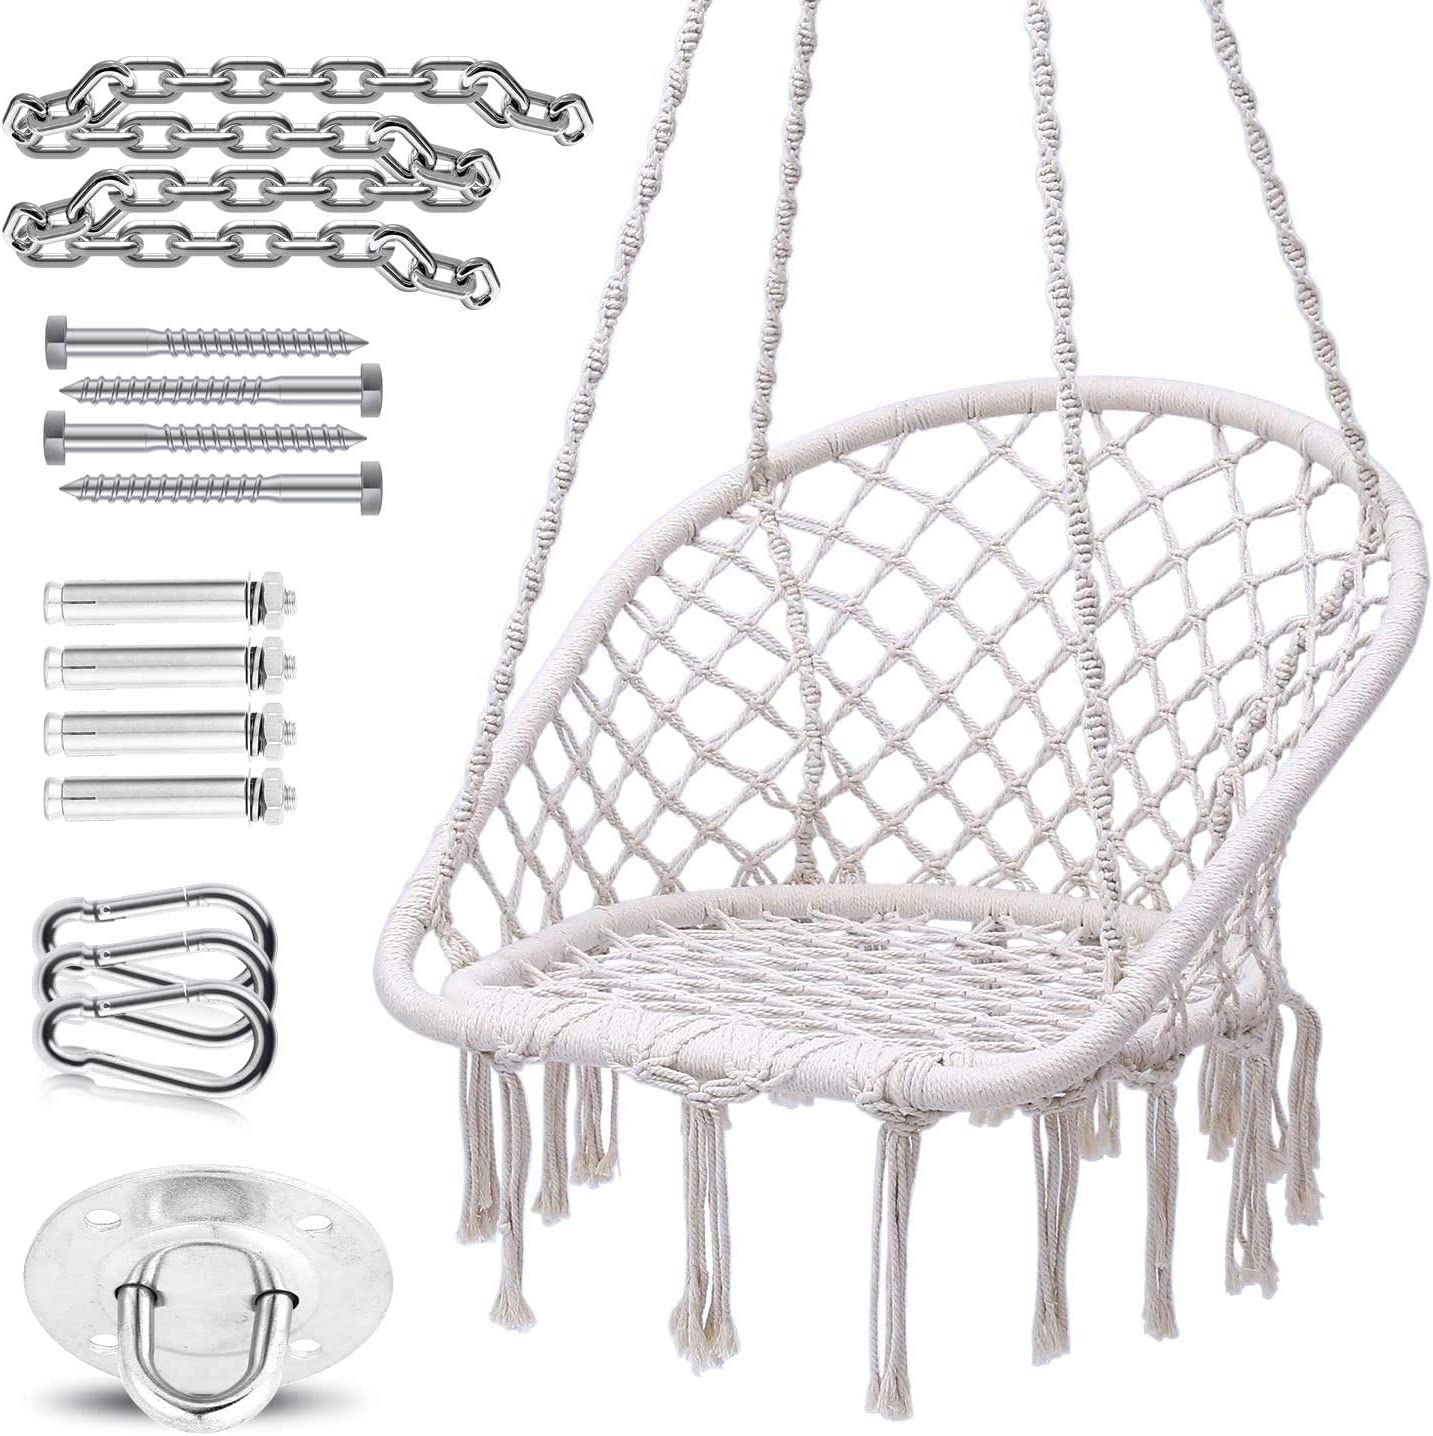 Ohuhu Hammock Chair Macrame Swing, 2020 All New Ergonomic Design Semicircle Shape Hanging Hammock Chair with Durable Hanging Hardware Kit, Max 330 Lbs Capacity, 100 Cotton Rope Indoor Swing Chairs